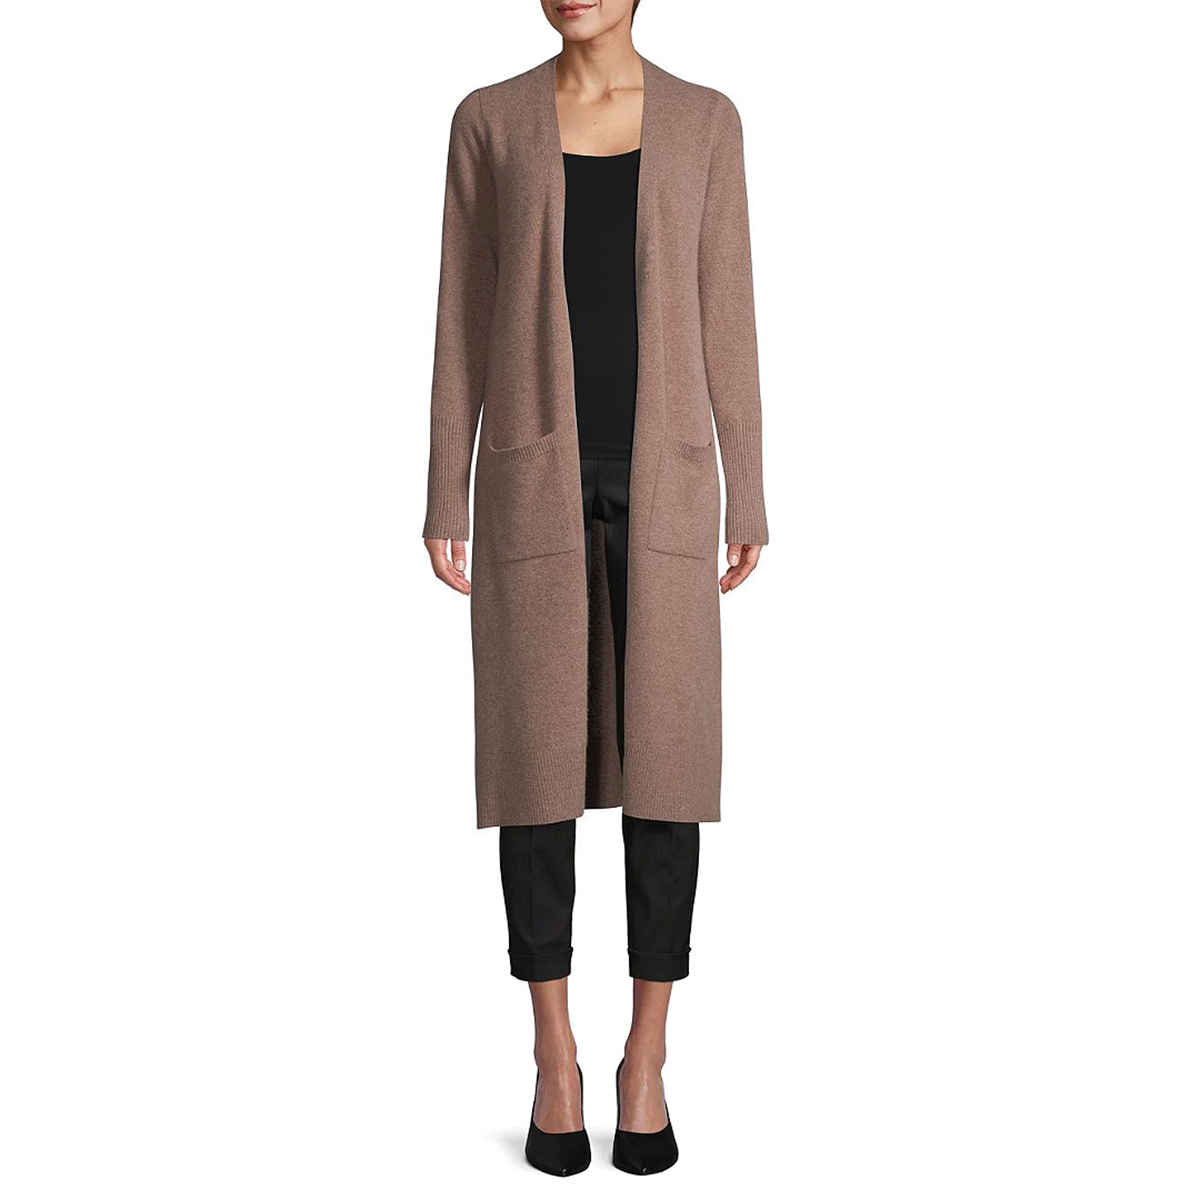 Save Over $100 on This Cashmere Duster (and Get Another One Free!)